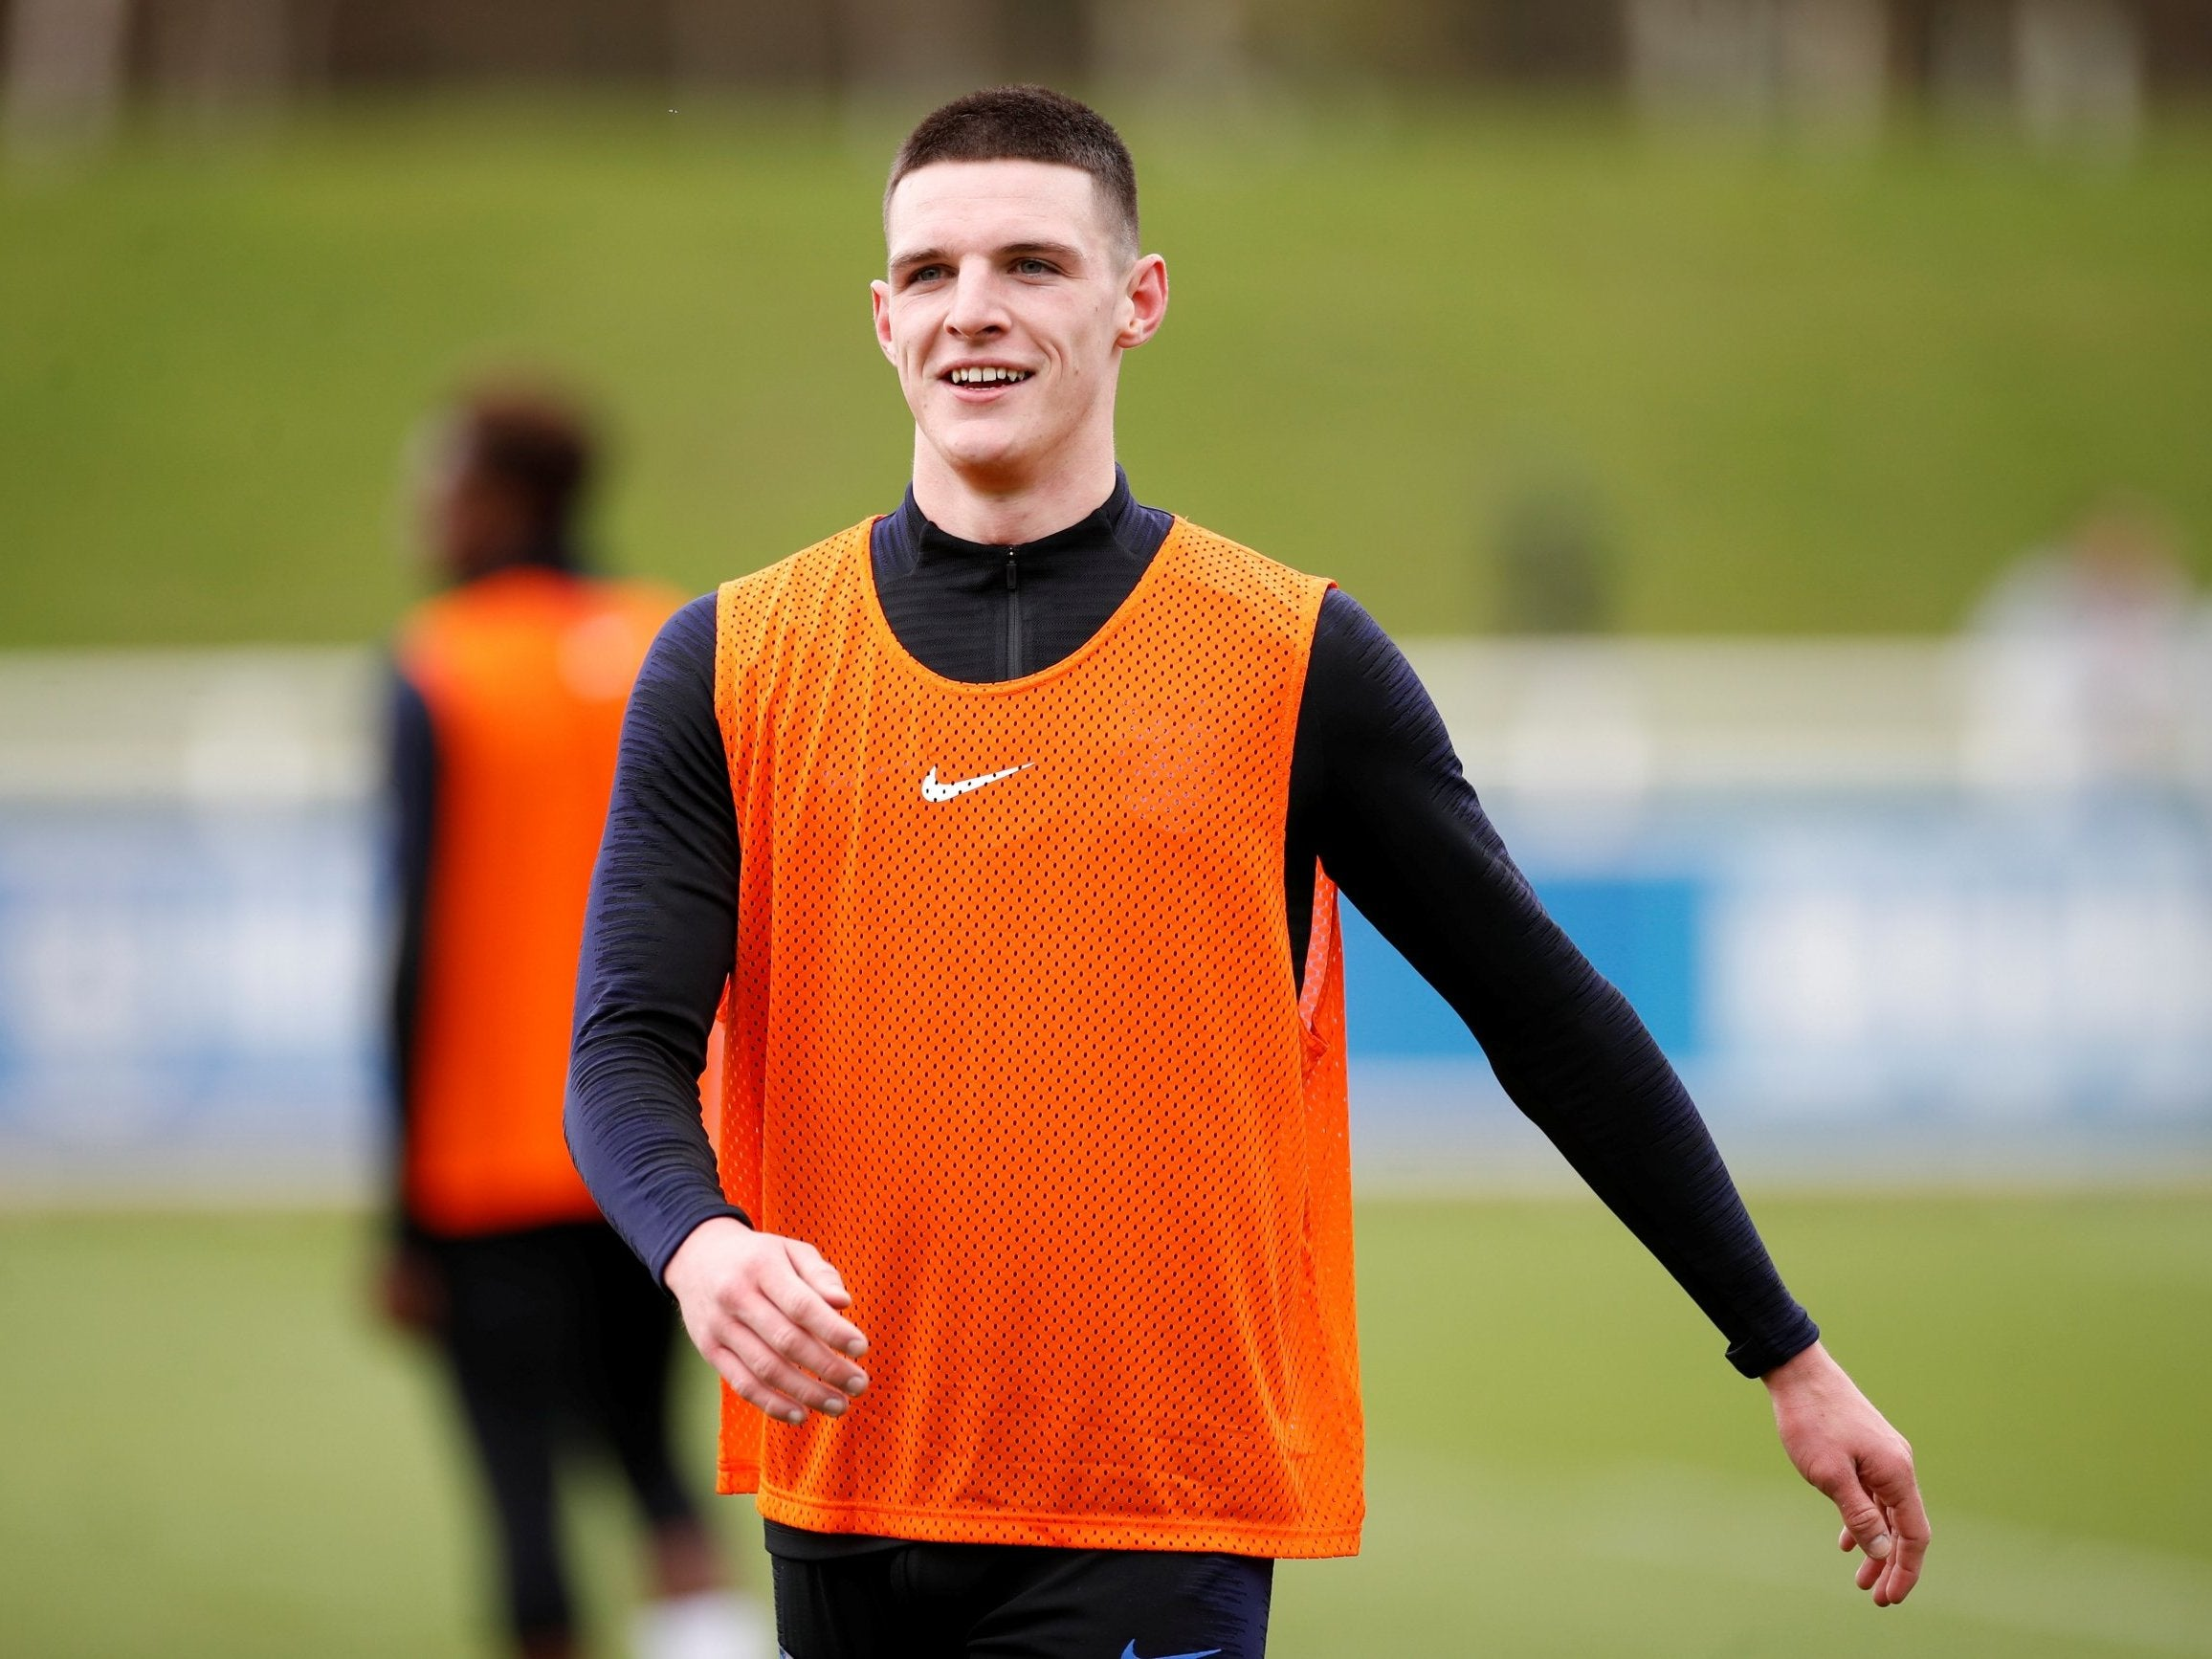 England vs Czech Republic: Declan Rice 'bursting with pride' after receiving first international call-up